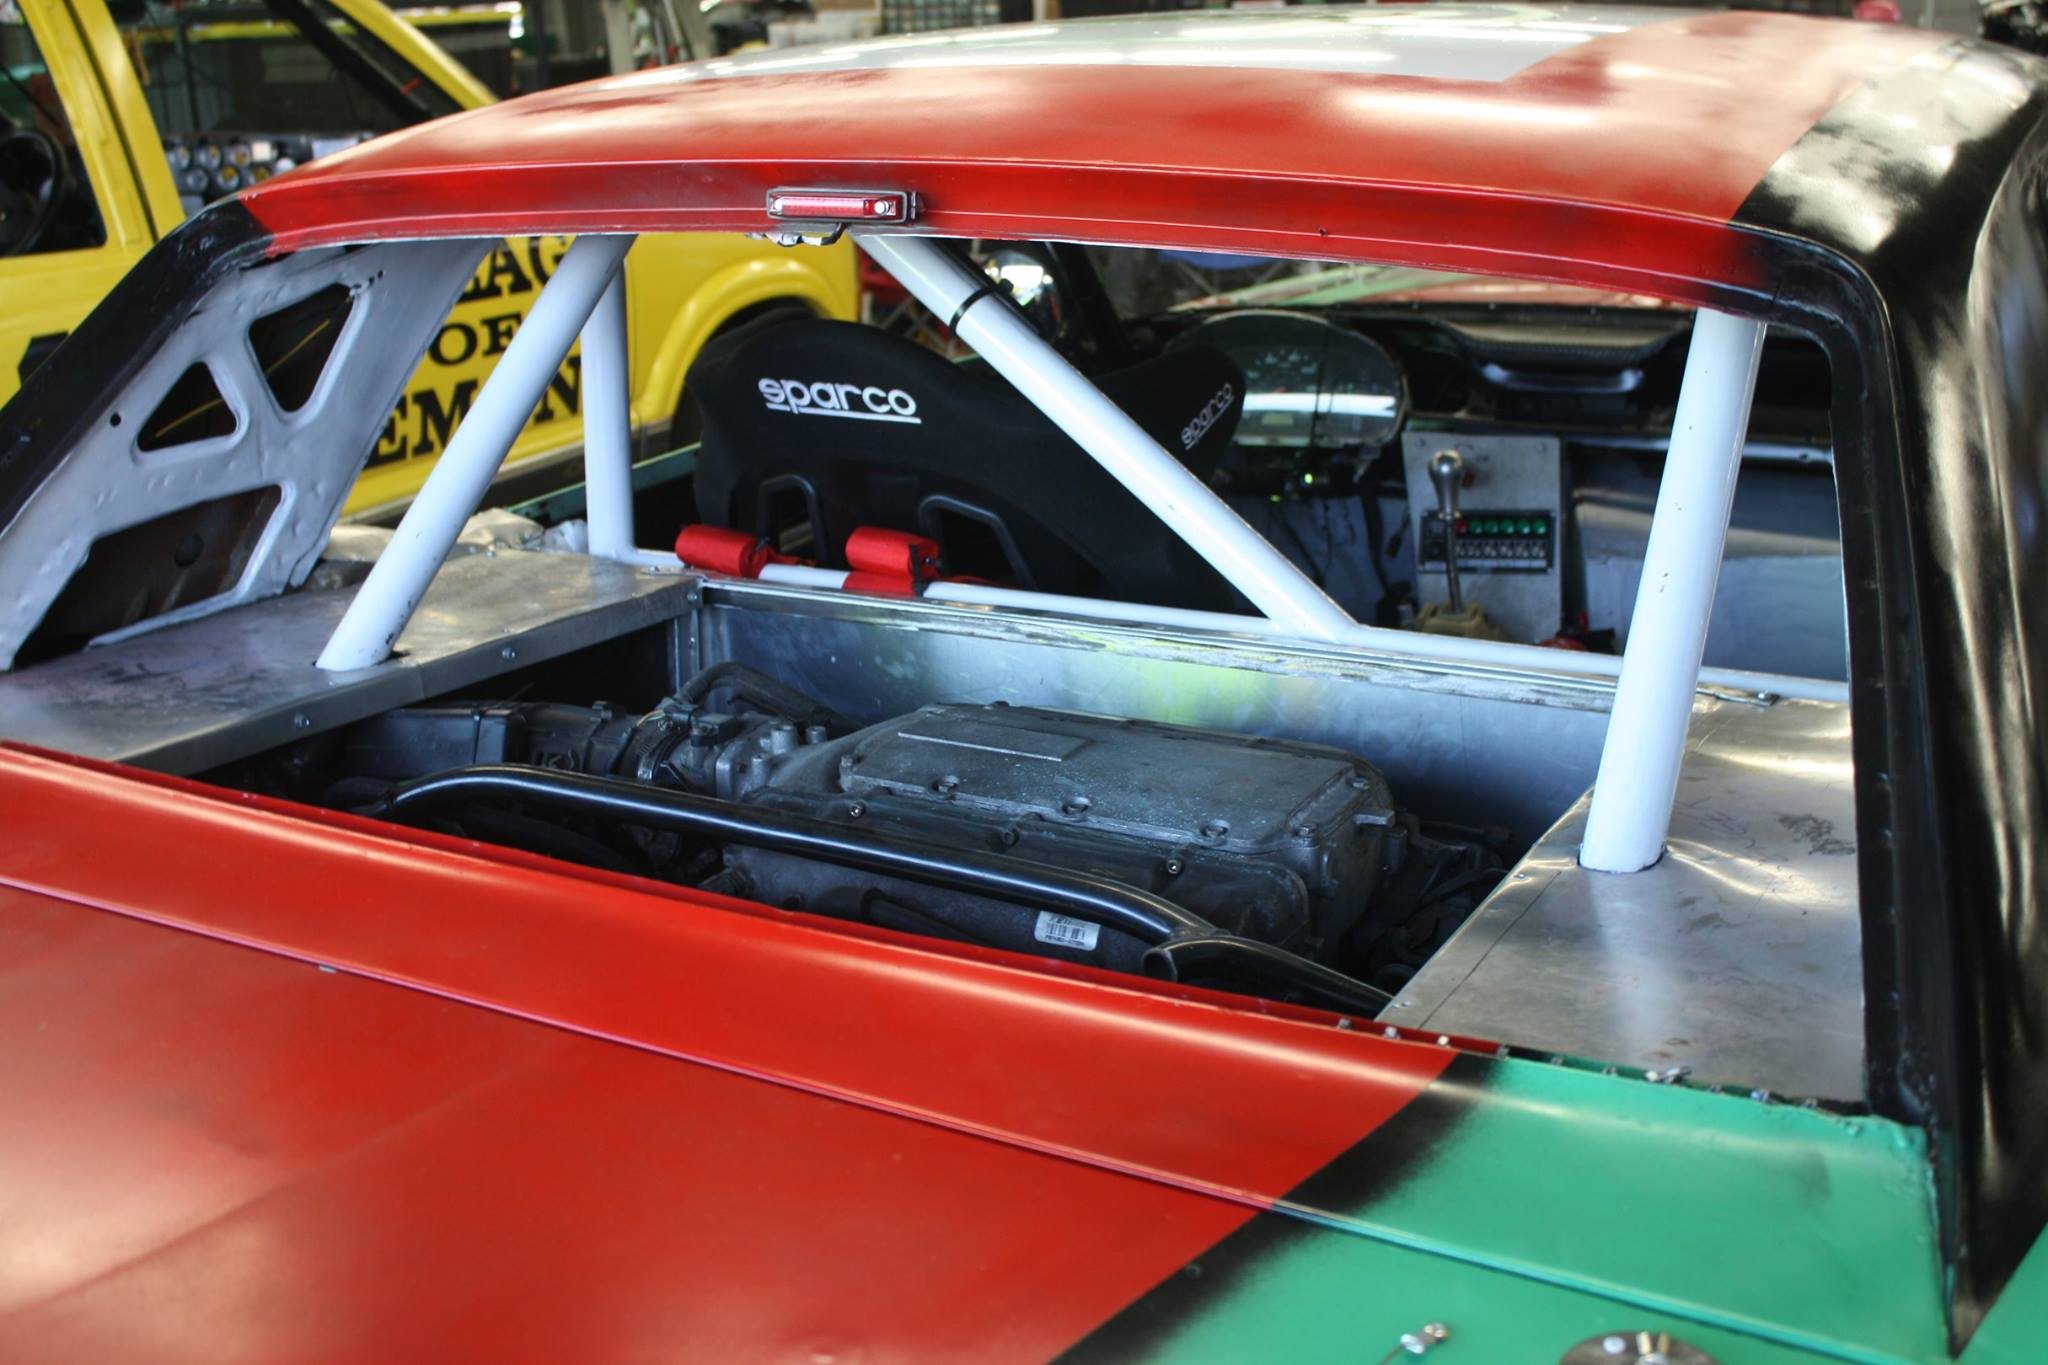 1967 Mustang with a Mid-Engine Honda J35 V6 – Engine Swap Depot